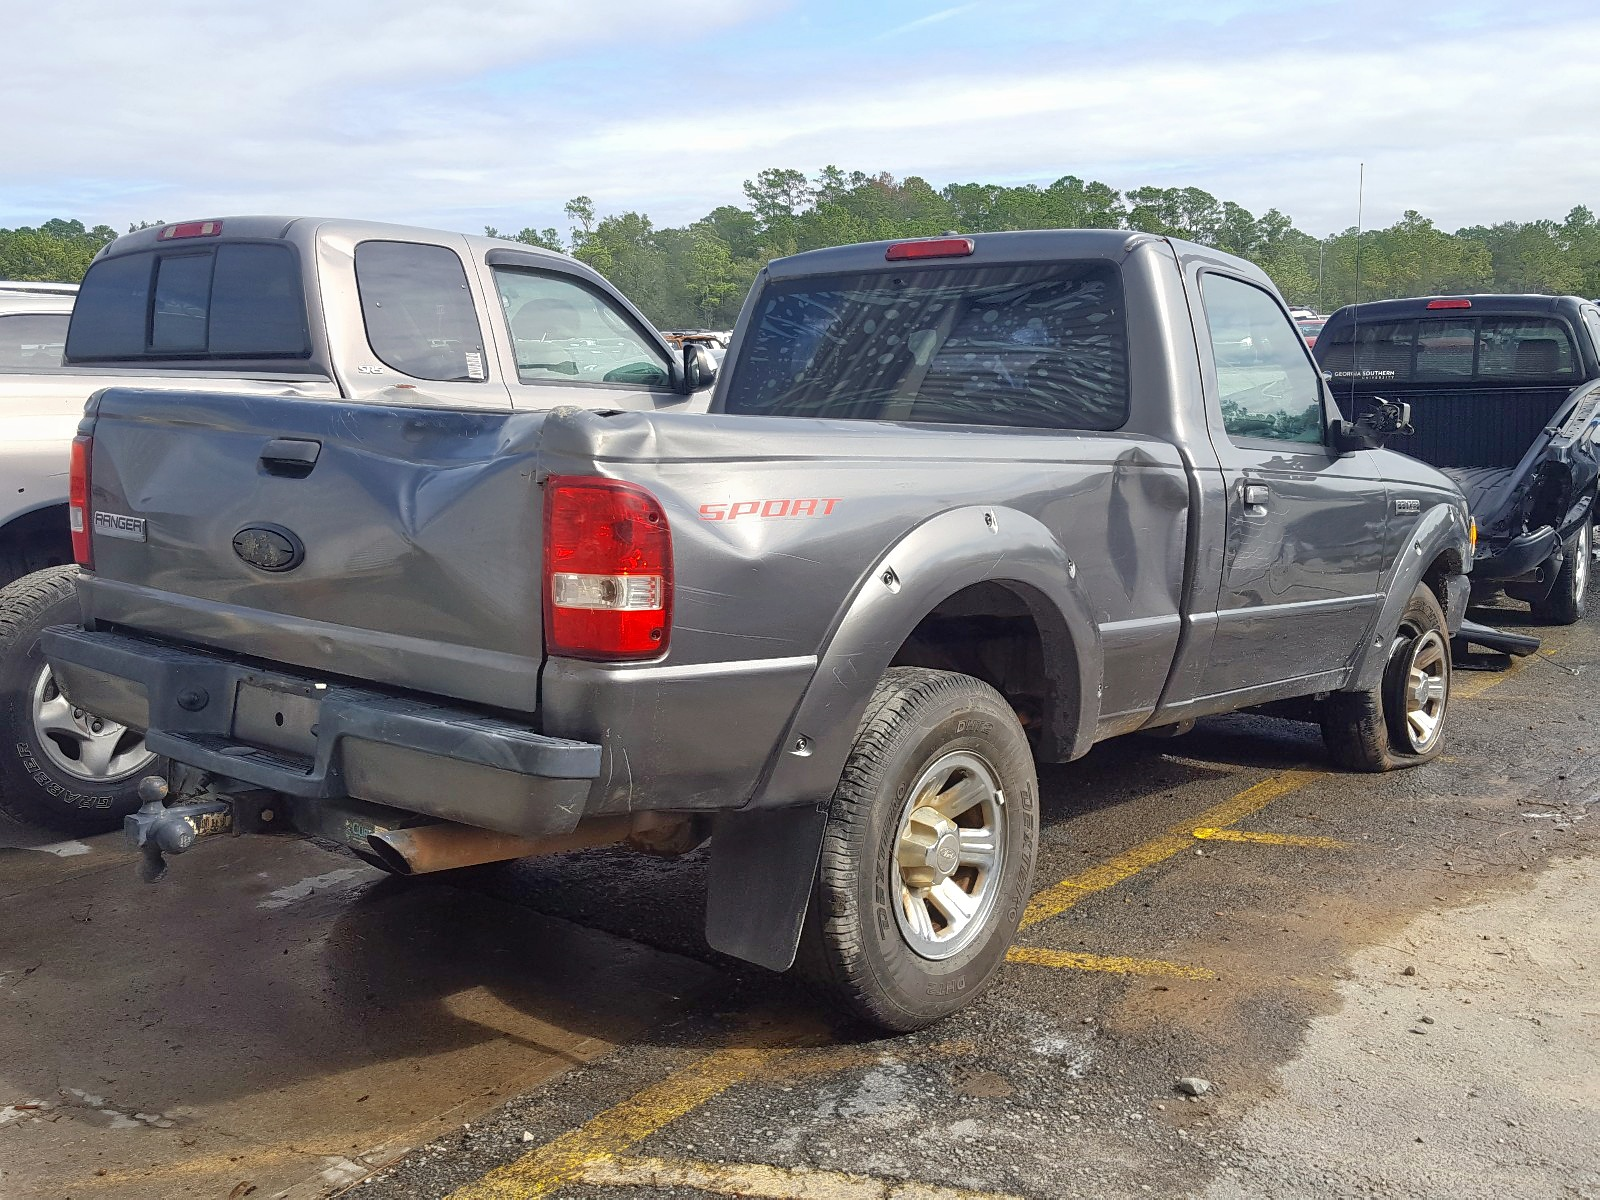 1FTYR10U46PA64835 - 2006 Ford Ranger 3.0L rear view